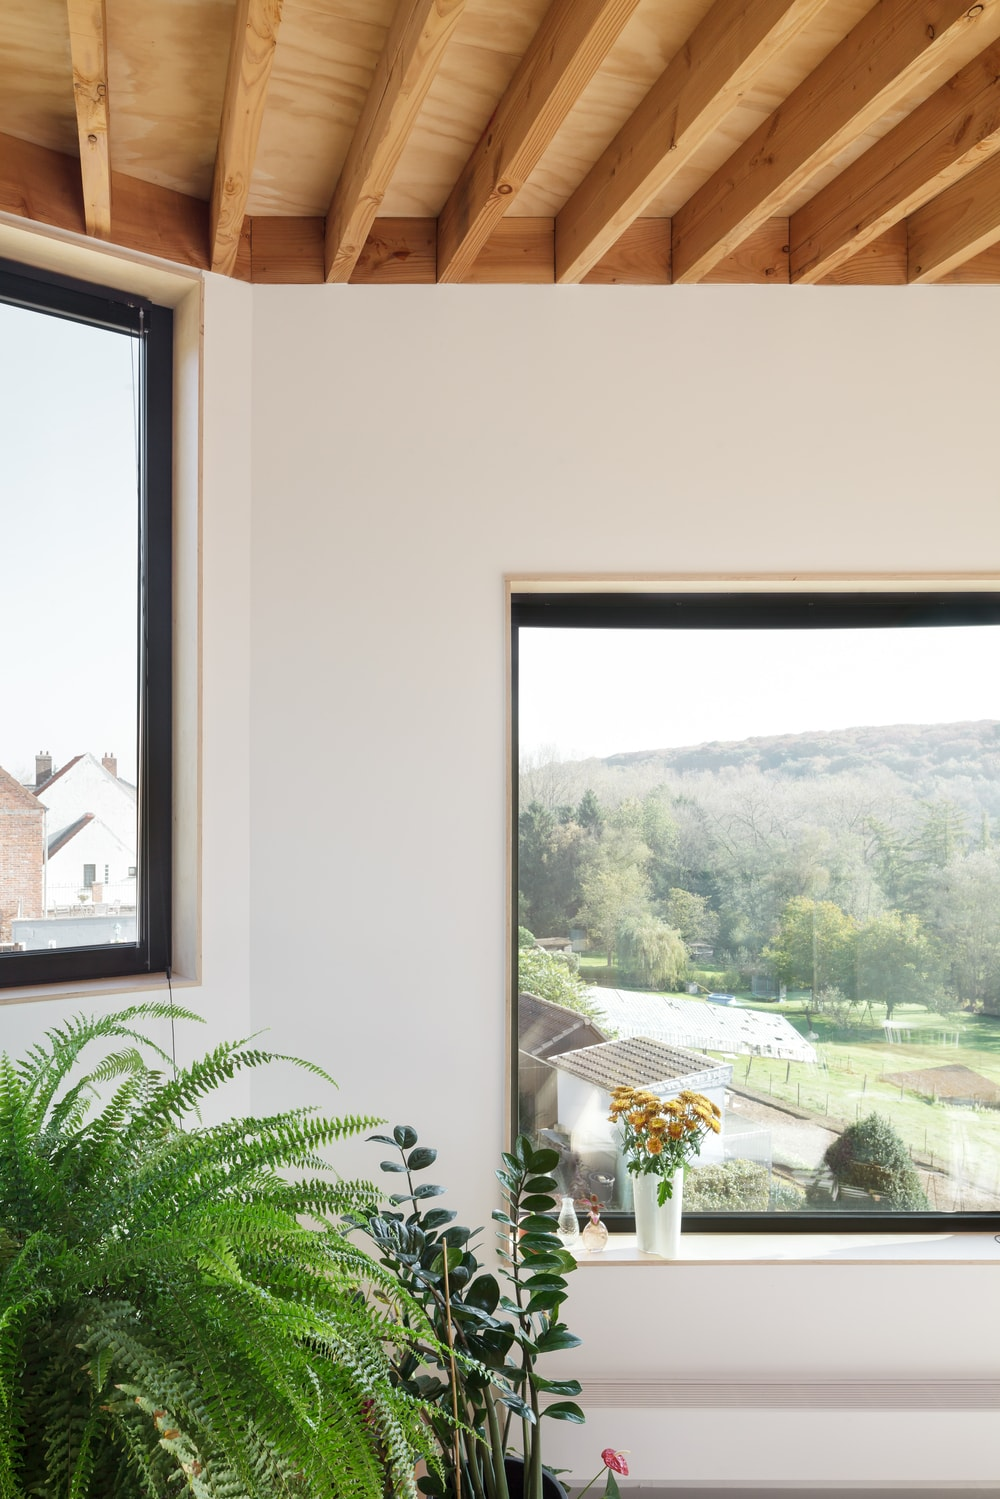 This is the couple of windows that can be seen from the vantage of the kitchen. These two has a sweeping view of the landscape below.